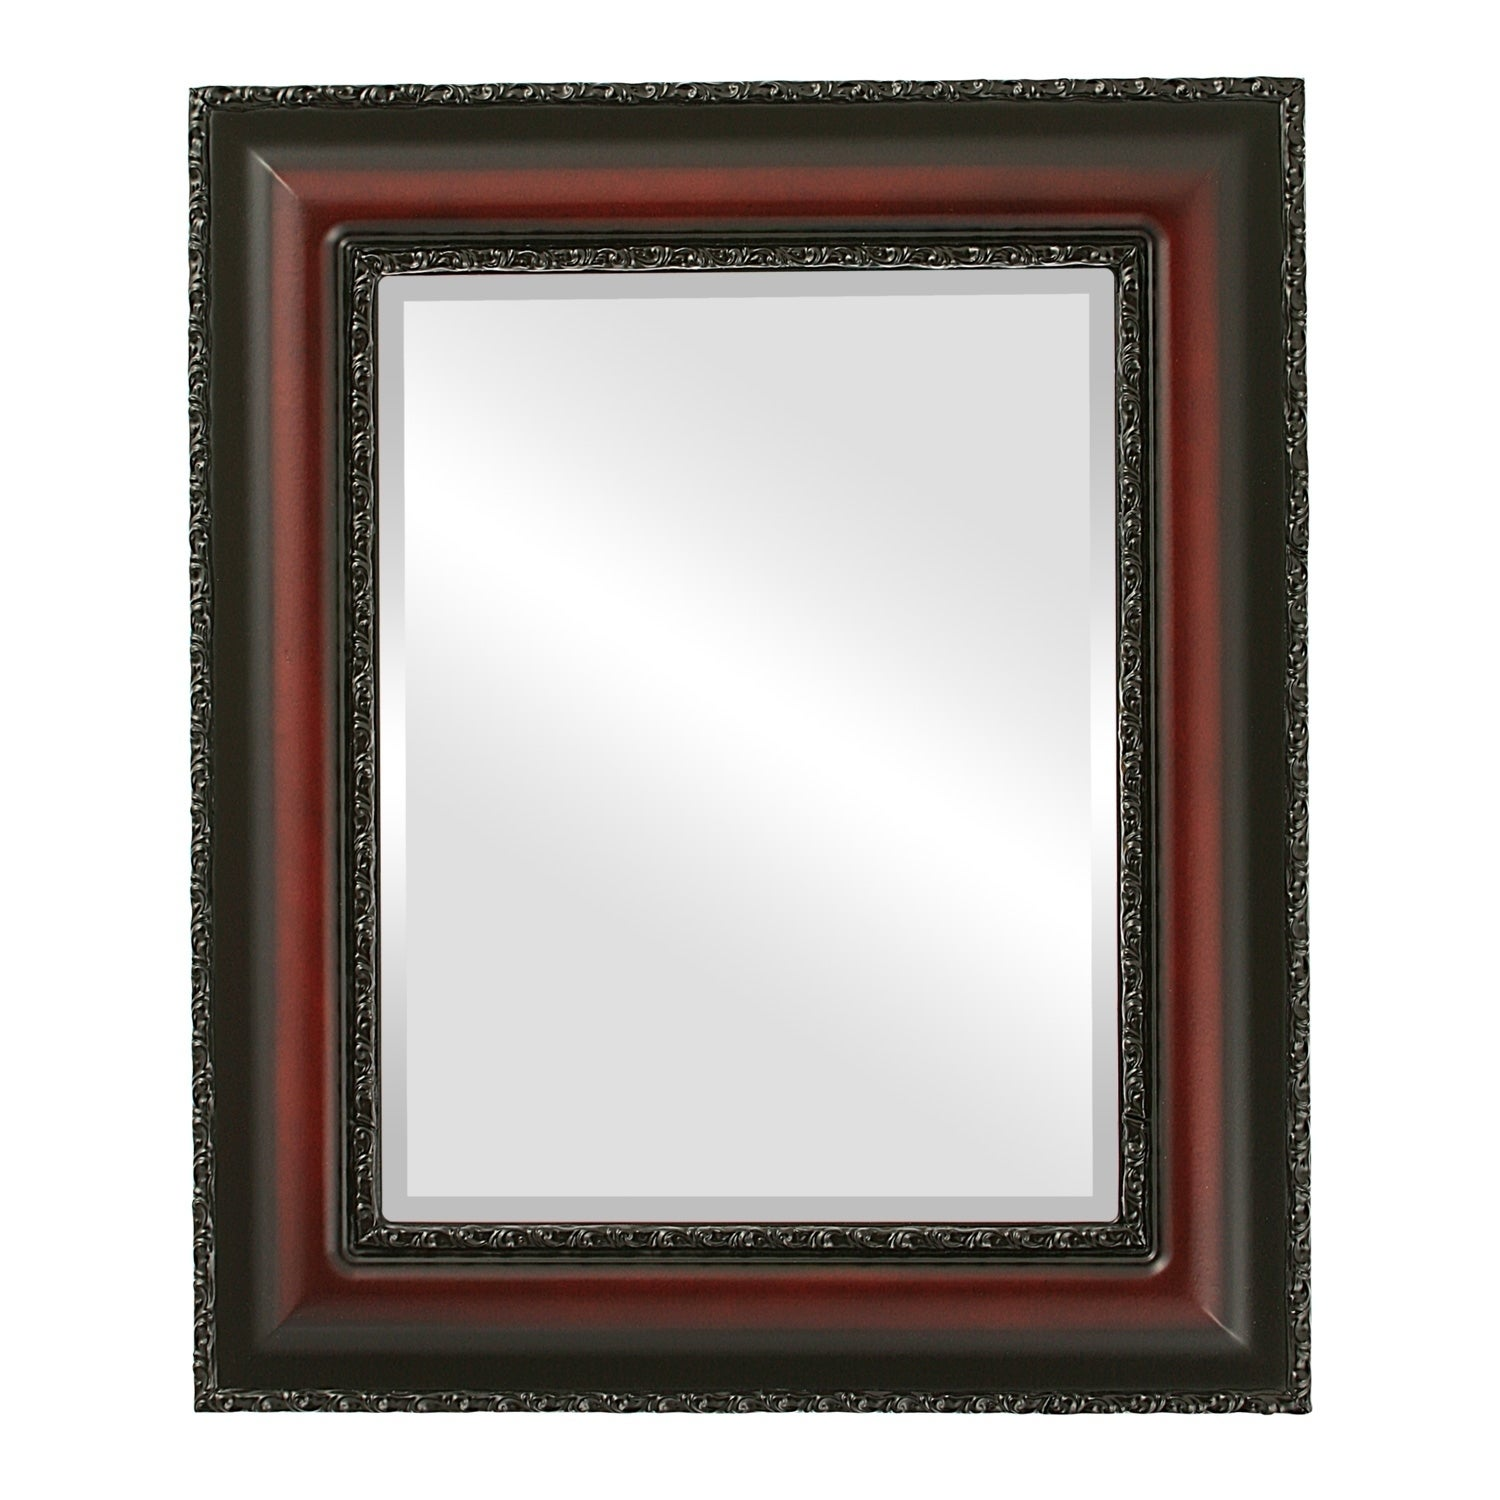 Somerset Framed Rectangle Mirror in Rosewood - Red (Large (over 32 high) - 29x41)